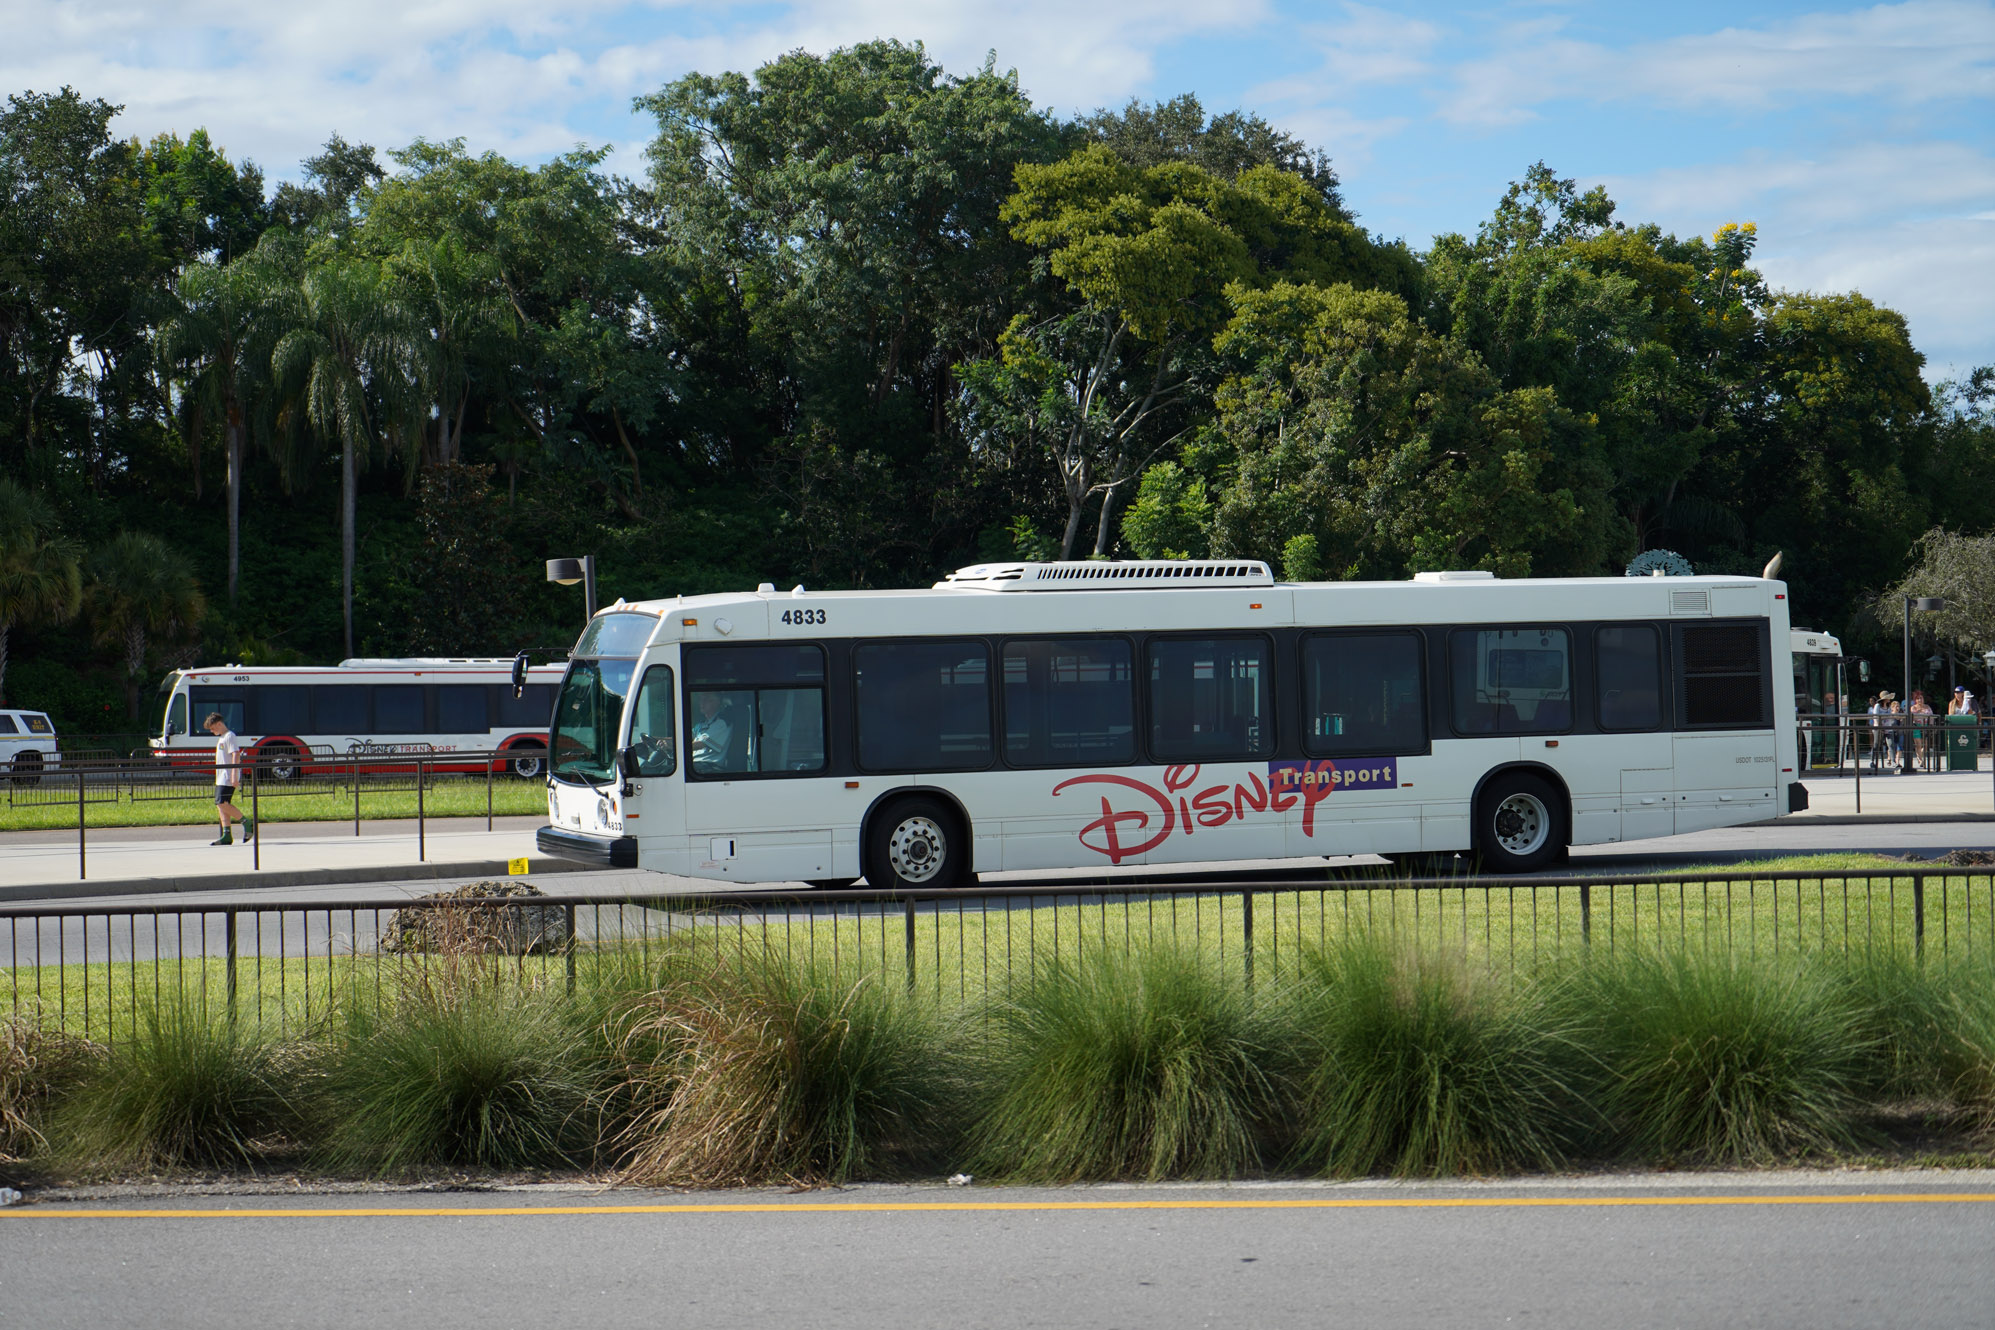 Disney World transportation from the airport